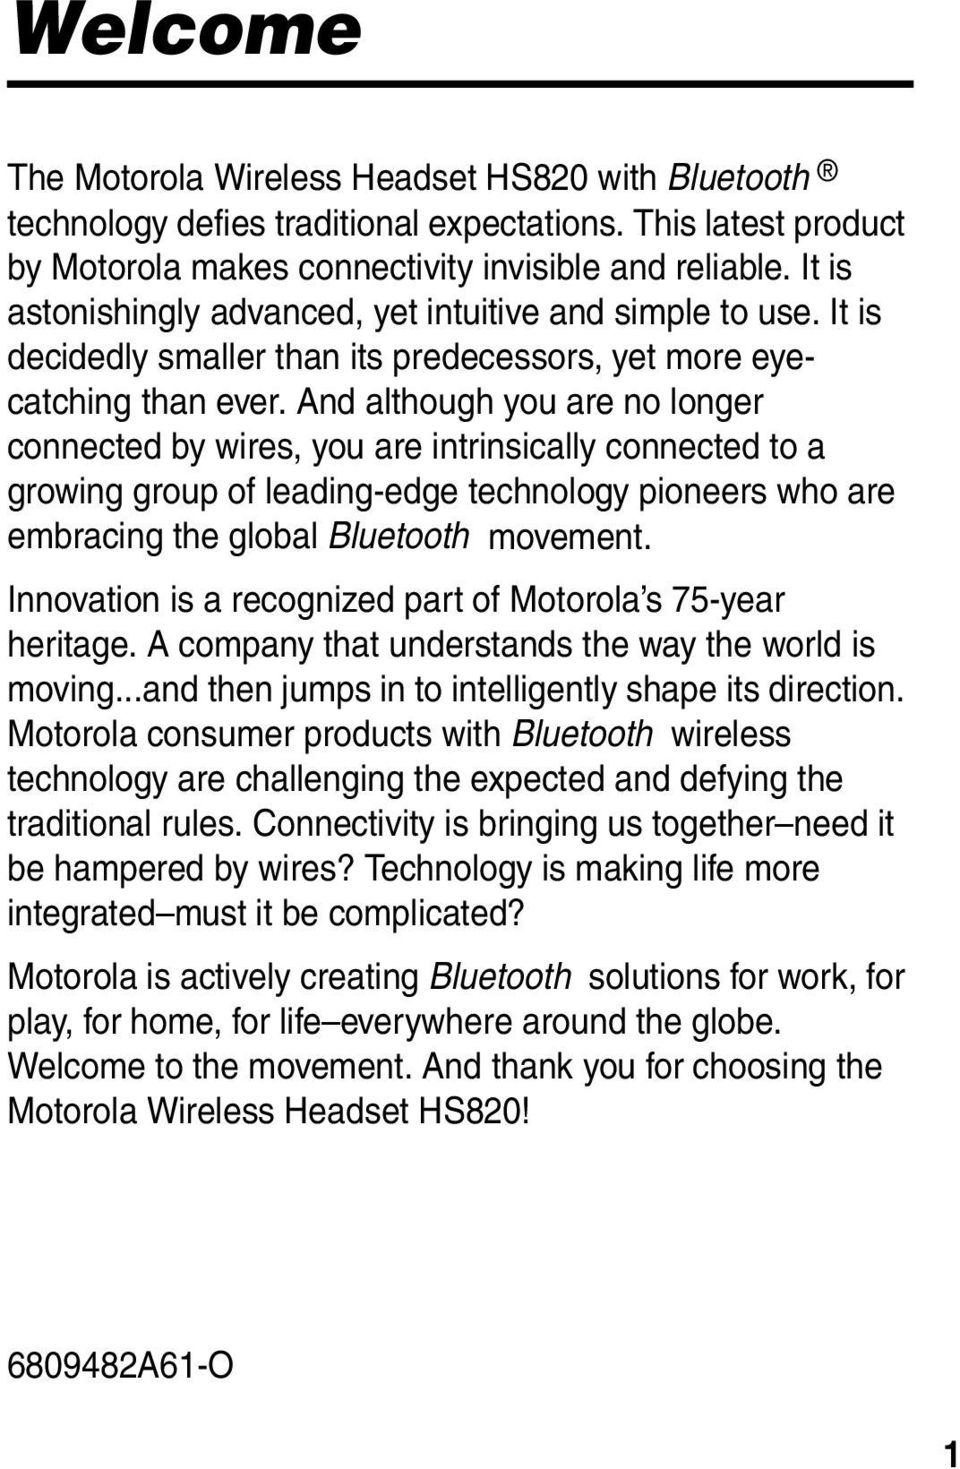 And although you are no longer connected by wires, you are intrinsically connected to a growing group of leading-edge technology pioneers who are embracing the global Bluetooth movement.